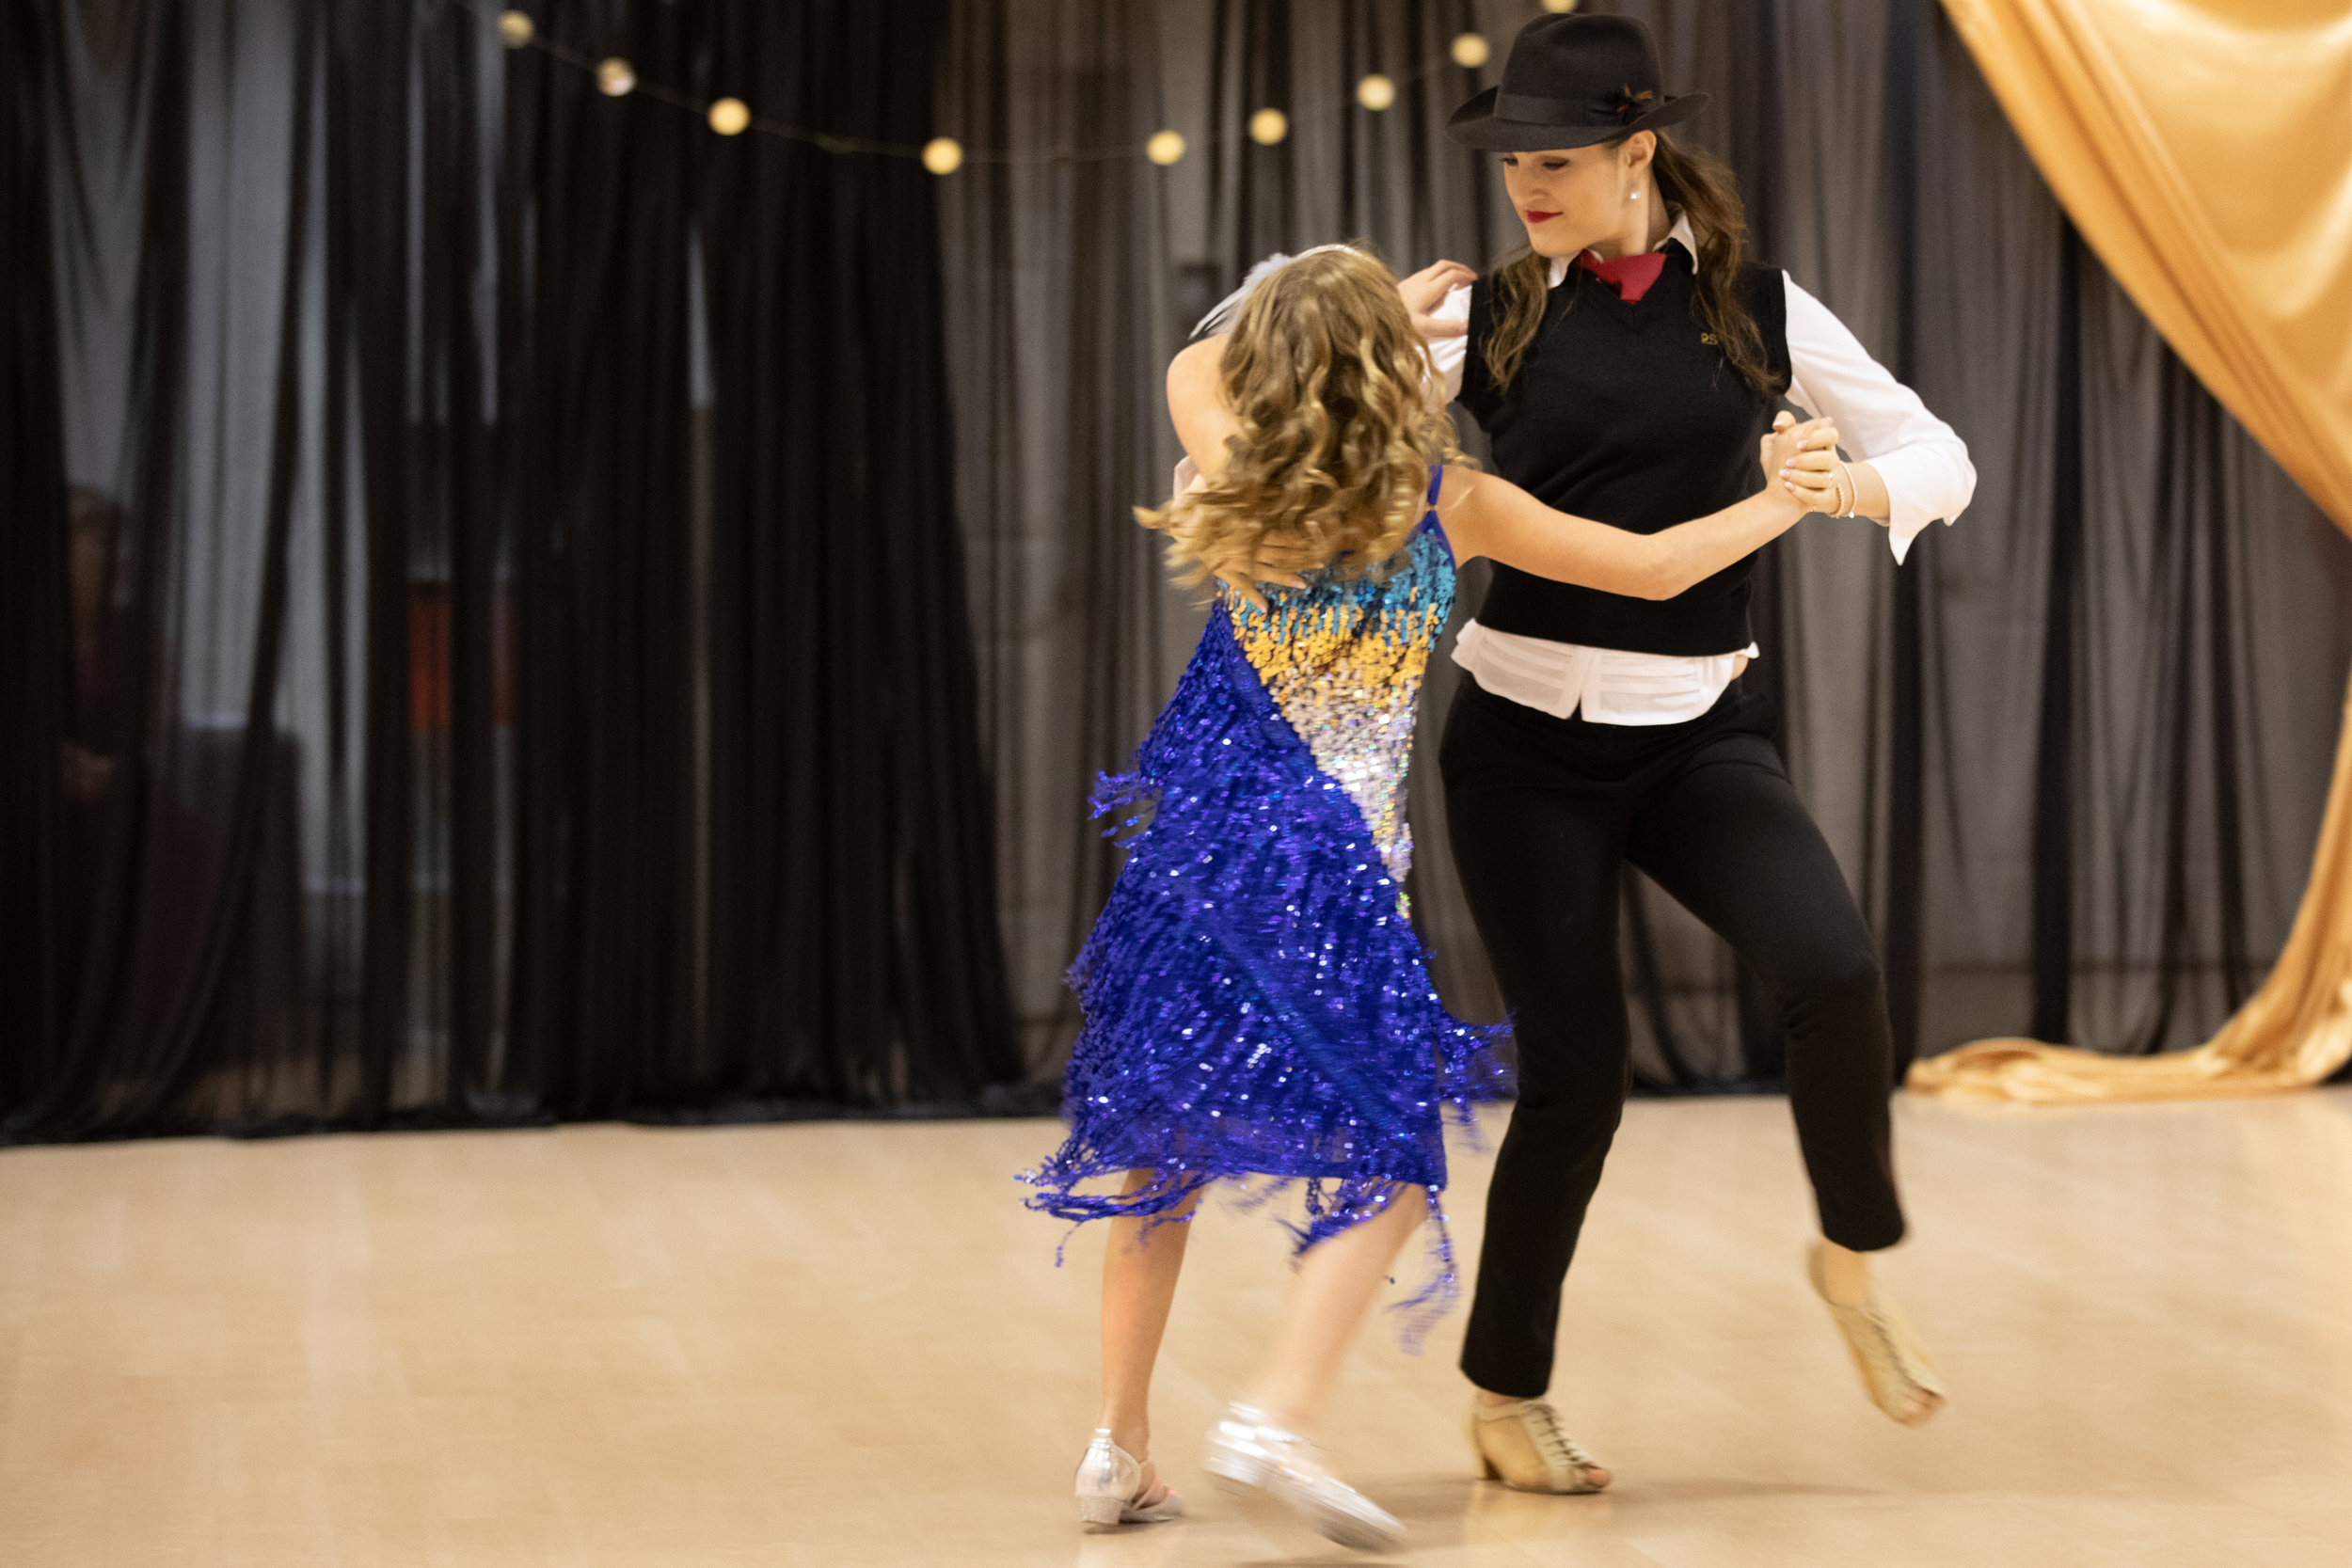 DanceFireShowcaseSpectacular2018-12.jpg